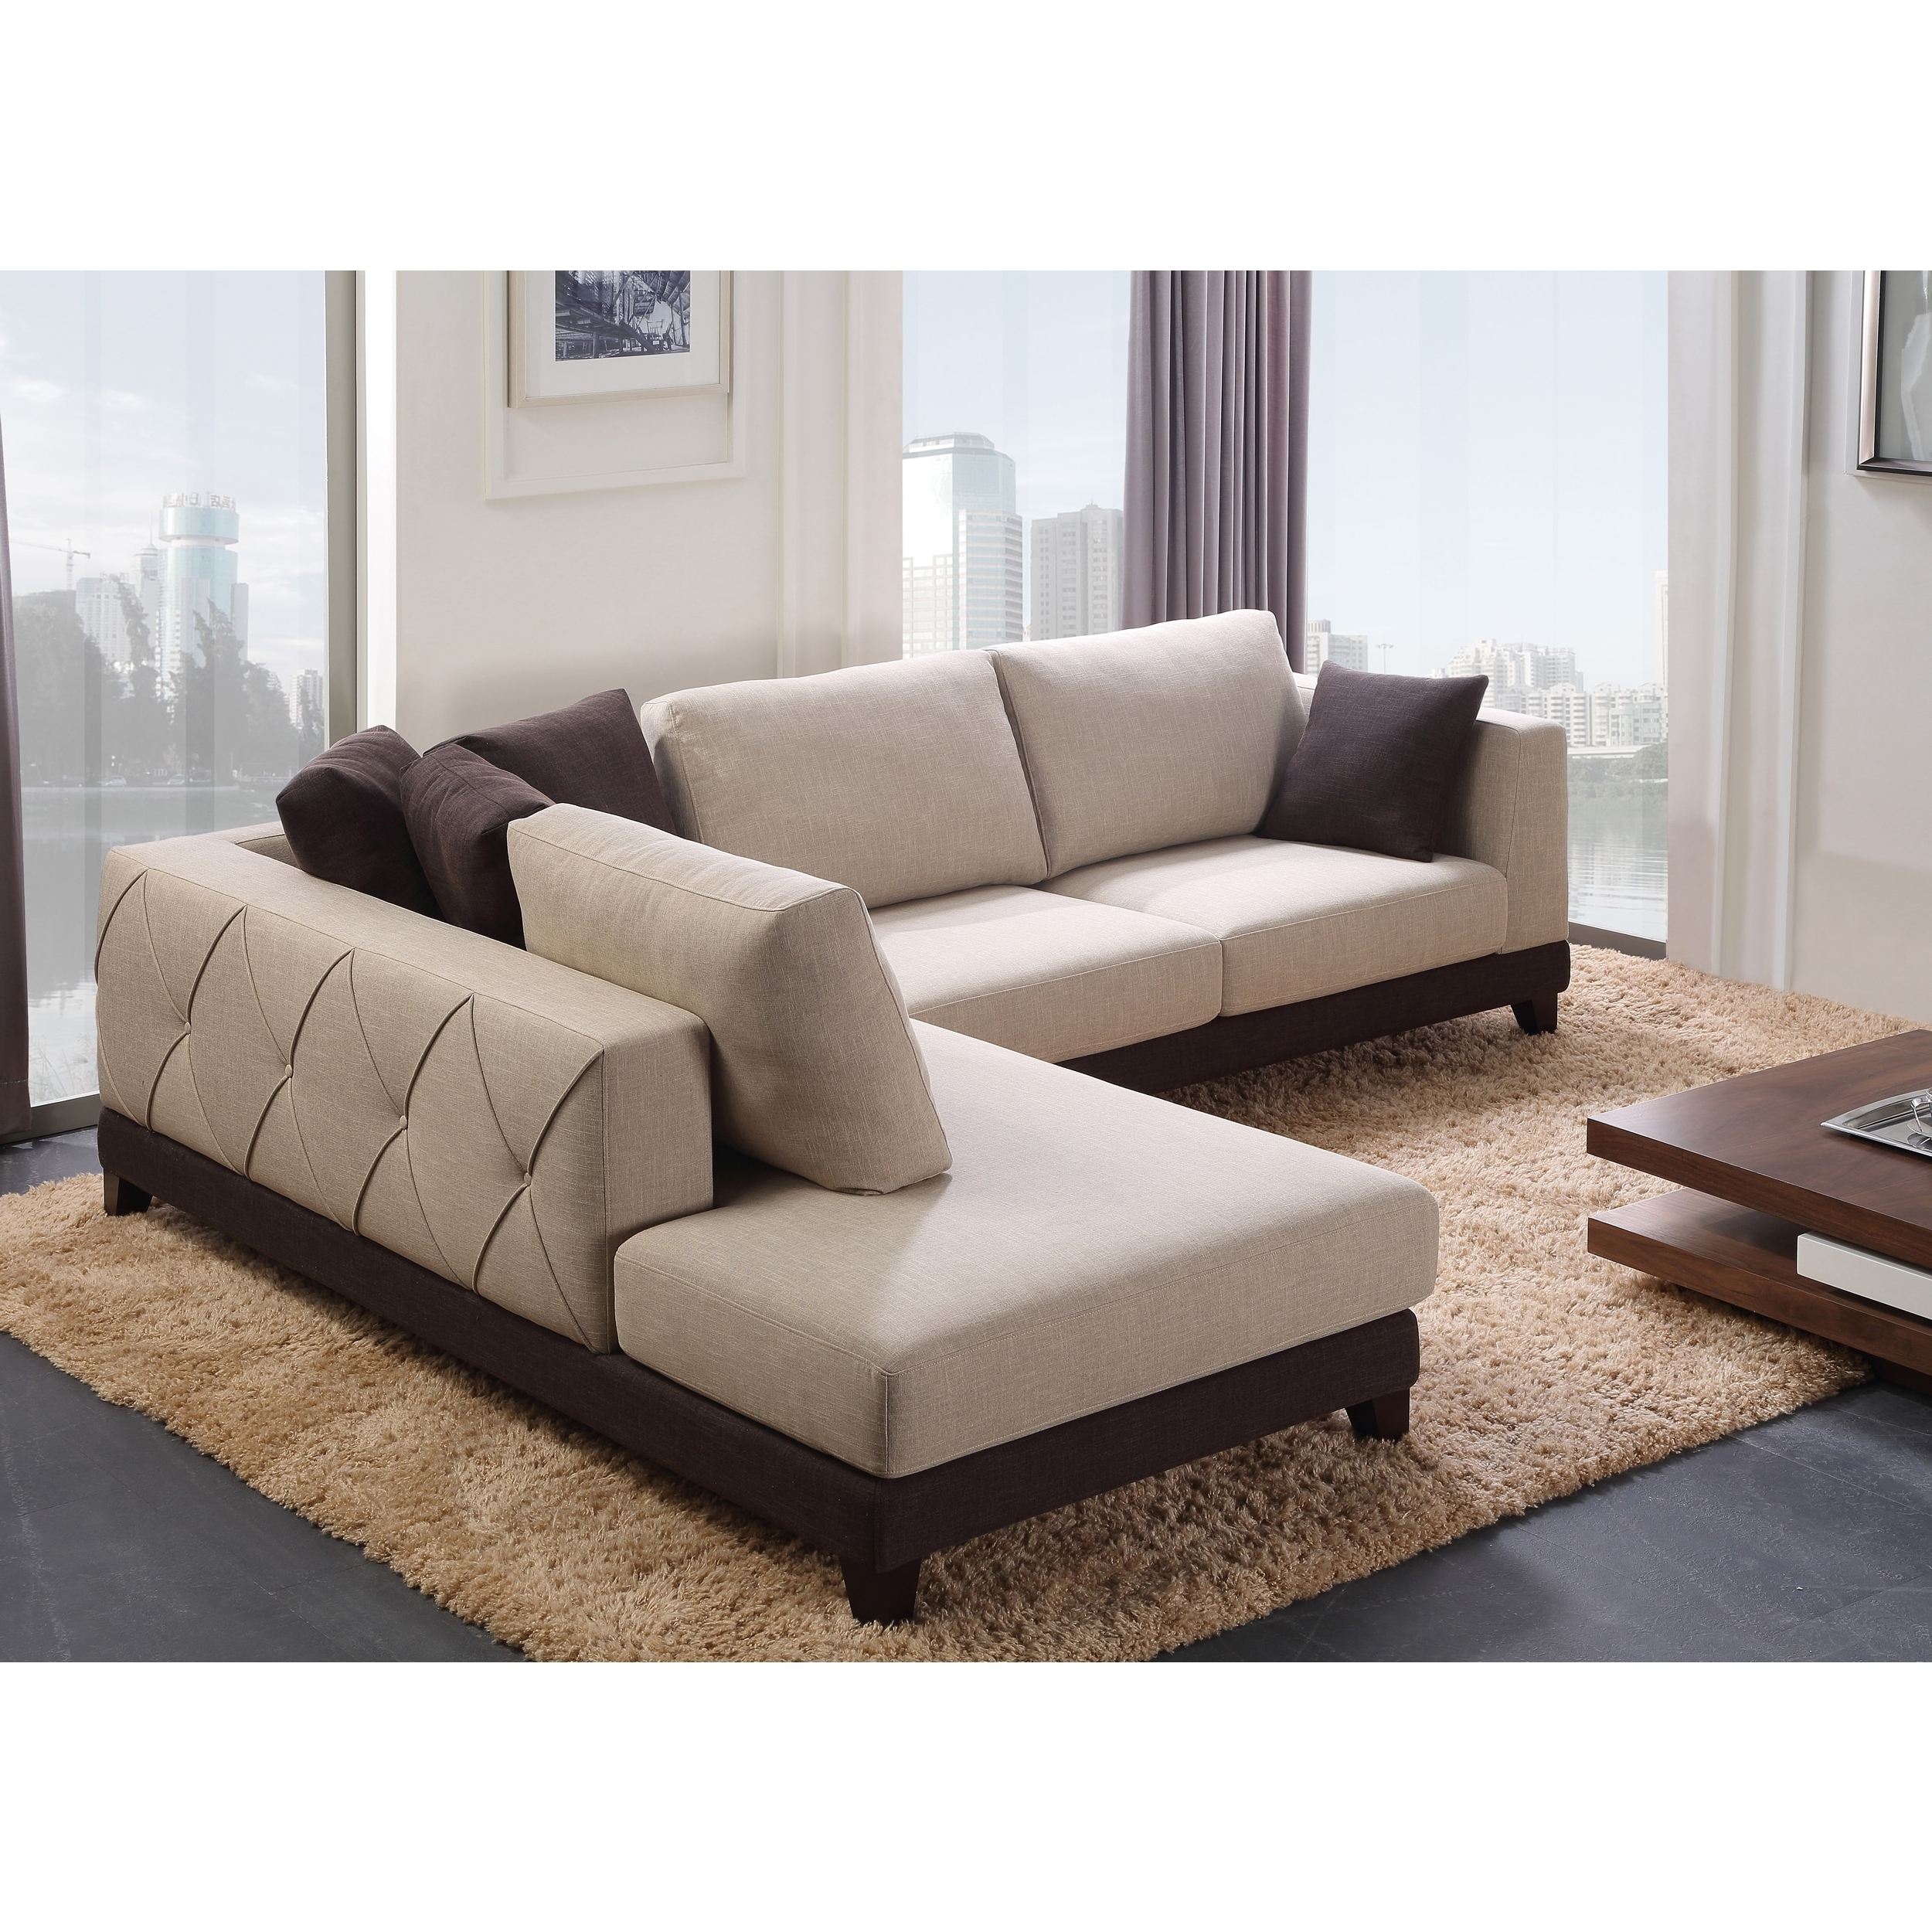 Widely Used Abbyson 'verona' Fabric Sectional Sofa – Free Shipping Today With Regard To Abbyson Sectional Sofas (View 11 of 20)